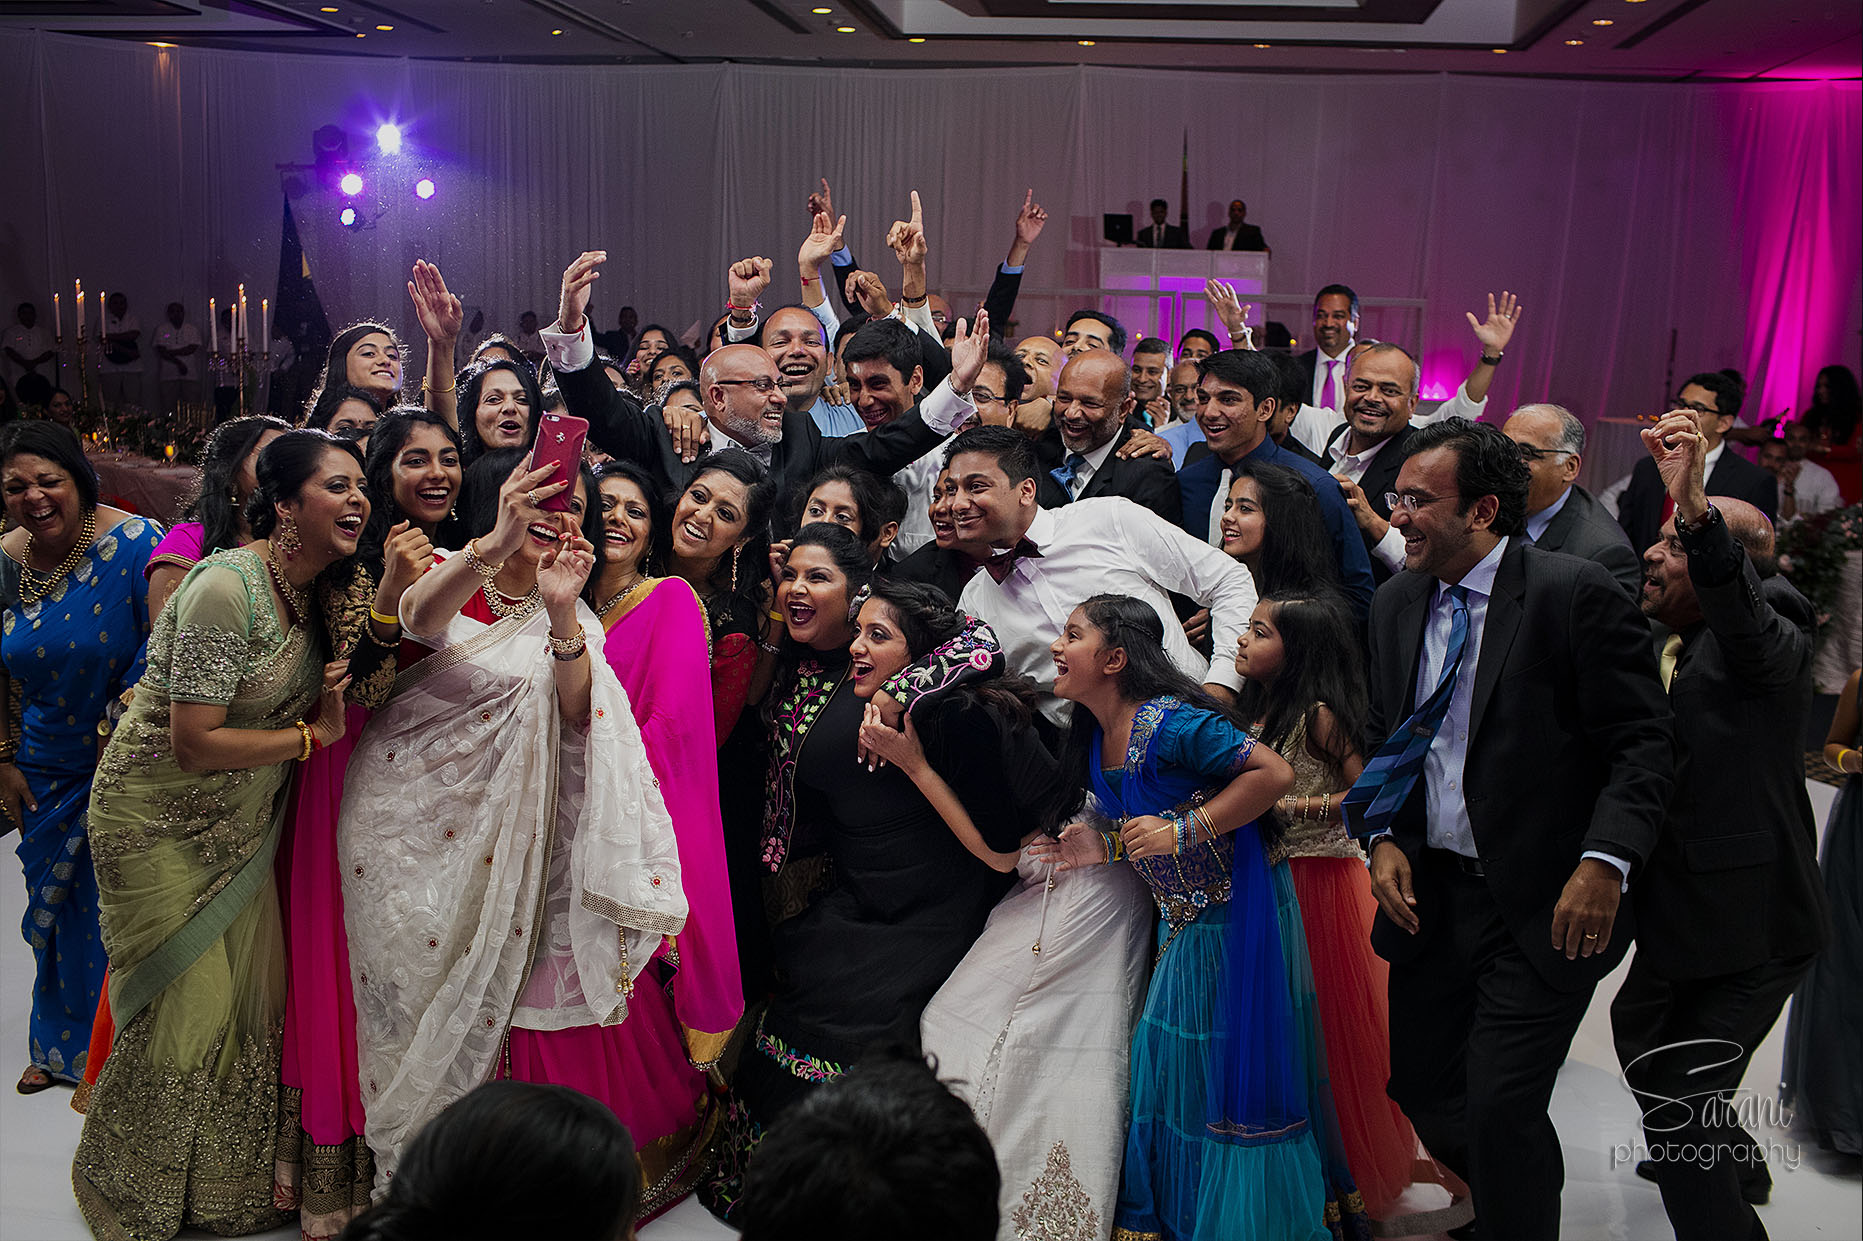 mexico-weddings-krishna-mihir-10.jpg